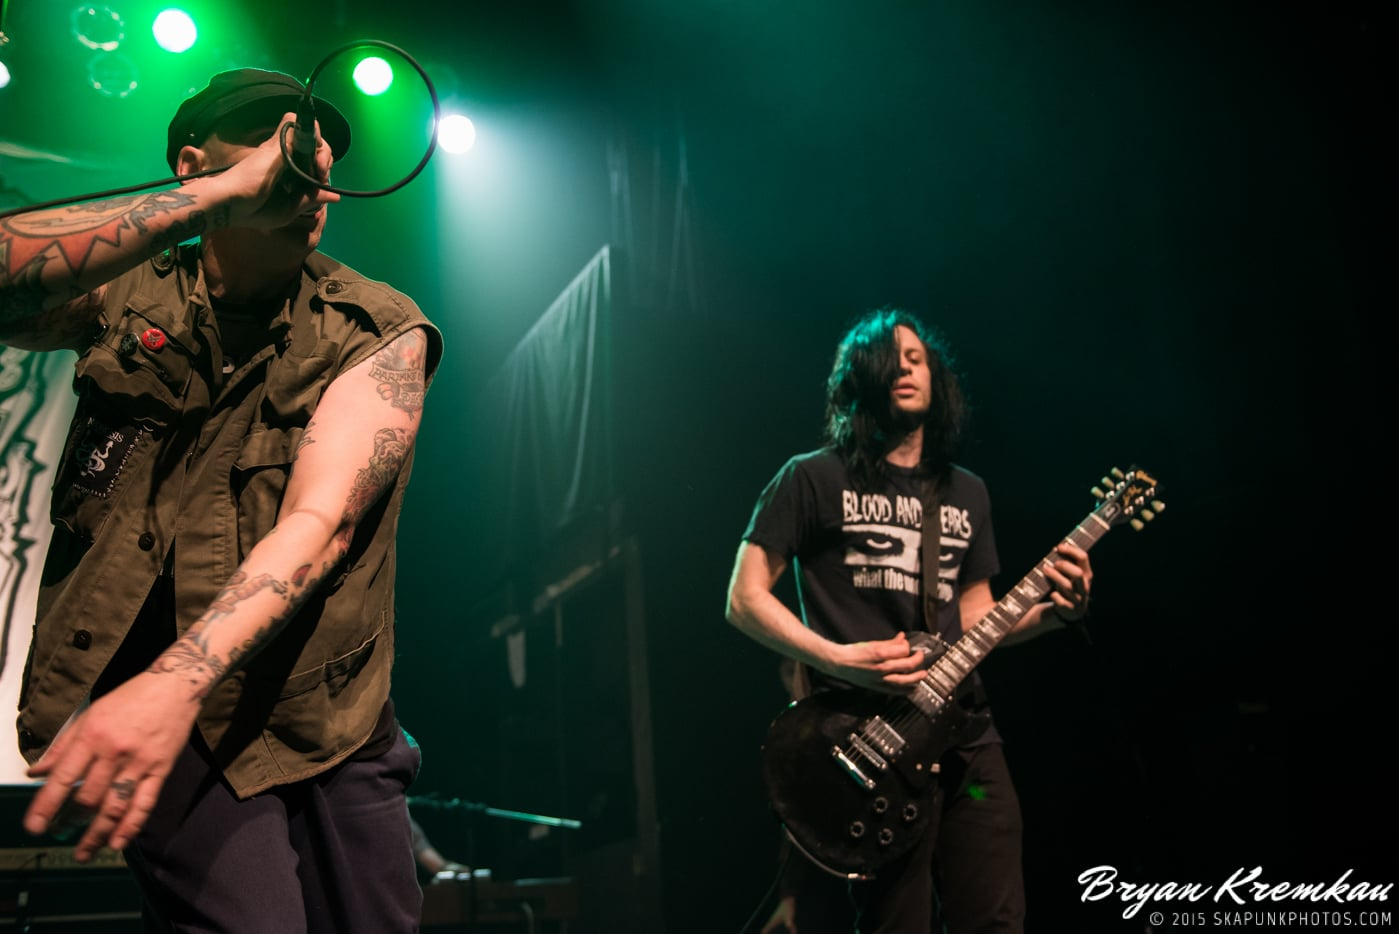 The Suicide Machines @ Gramercy Theatre, NYC - 4.10.15 (29)